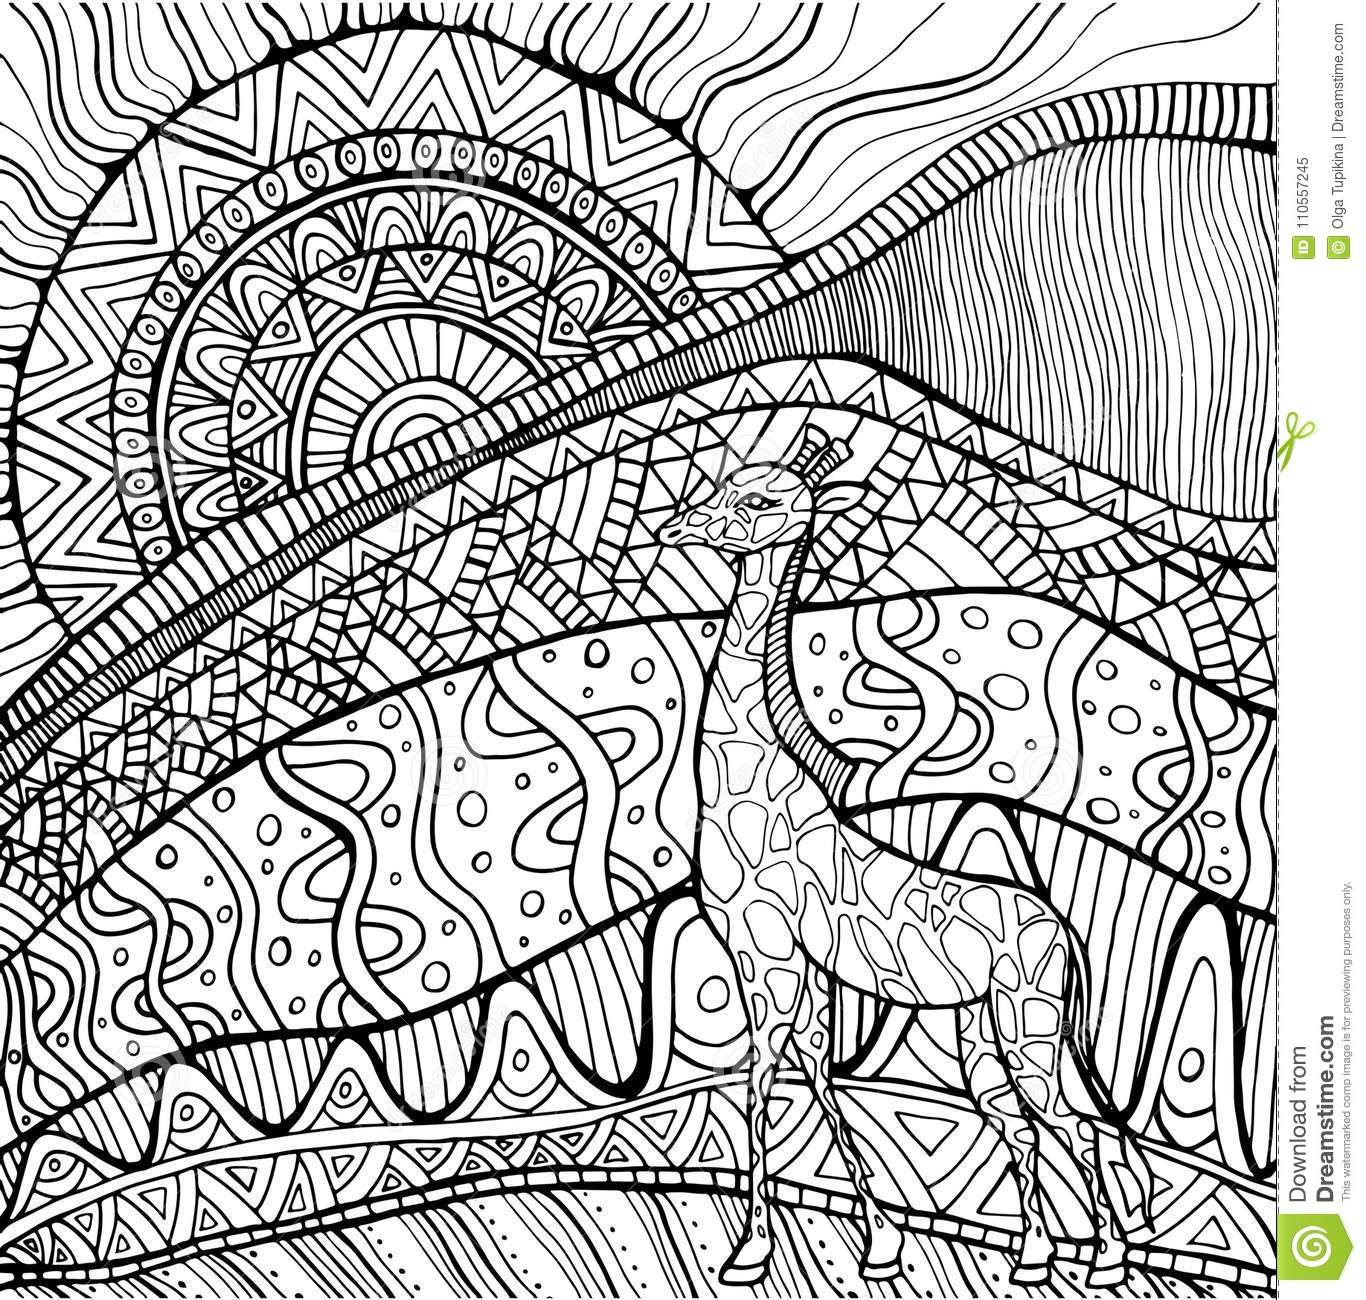 Download Ornamental Giraffe And Sun African Landscape Coloring Page Stock Vector